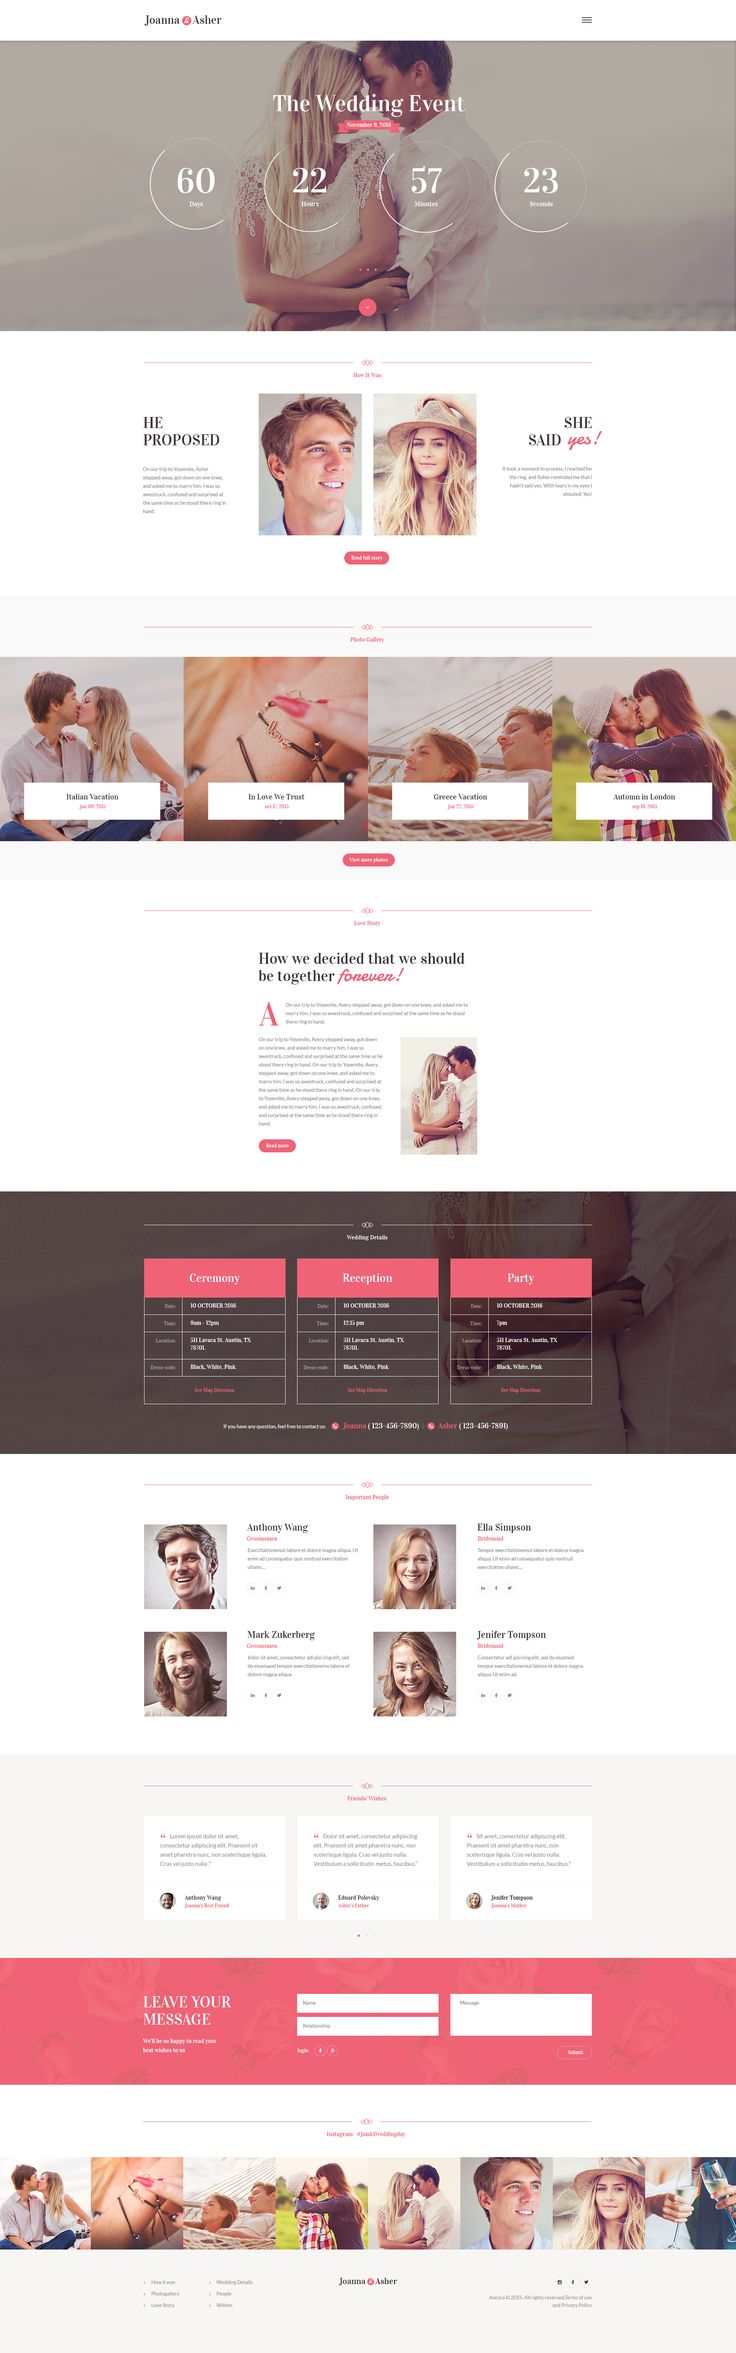 Wedding Event is an elegant 100% responsive WordPress Theme with a fashionable clean look. It is designed for any Wedding or Engagement event and helps you to give all the information to wedding guests or make an Invitation for your marriage party.